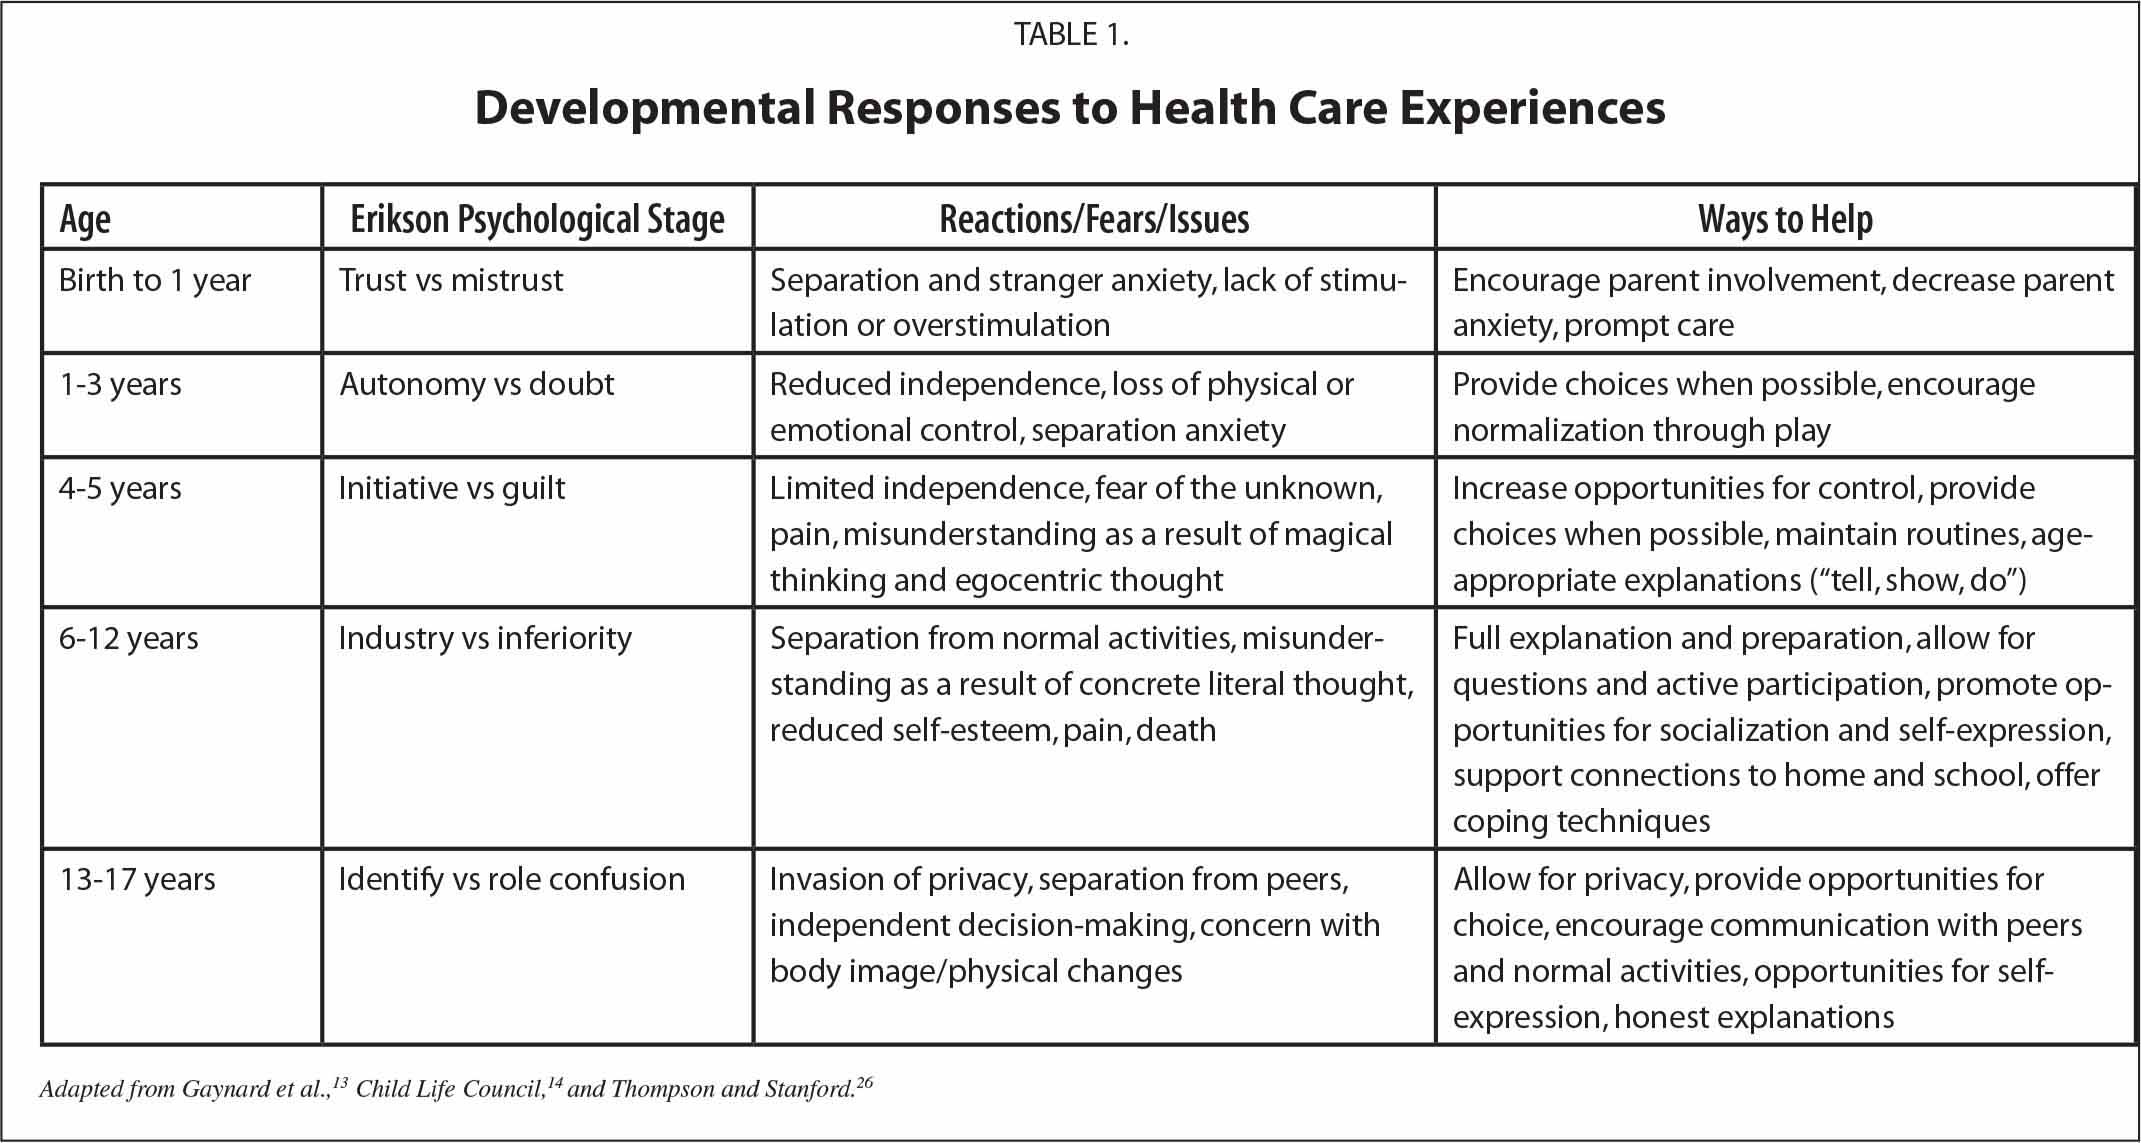 Developmental Responses to Health Care Experiences